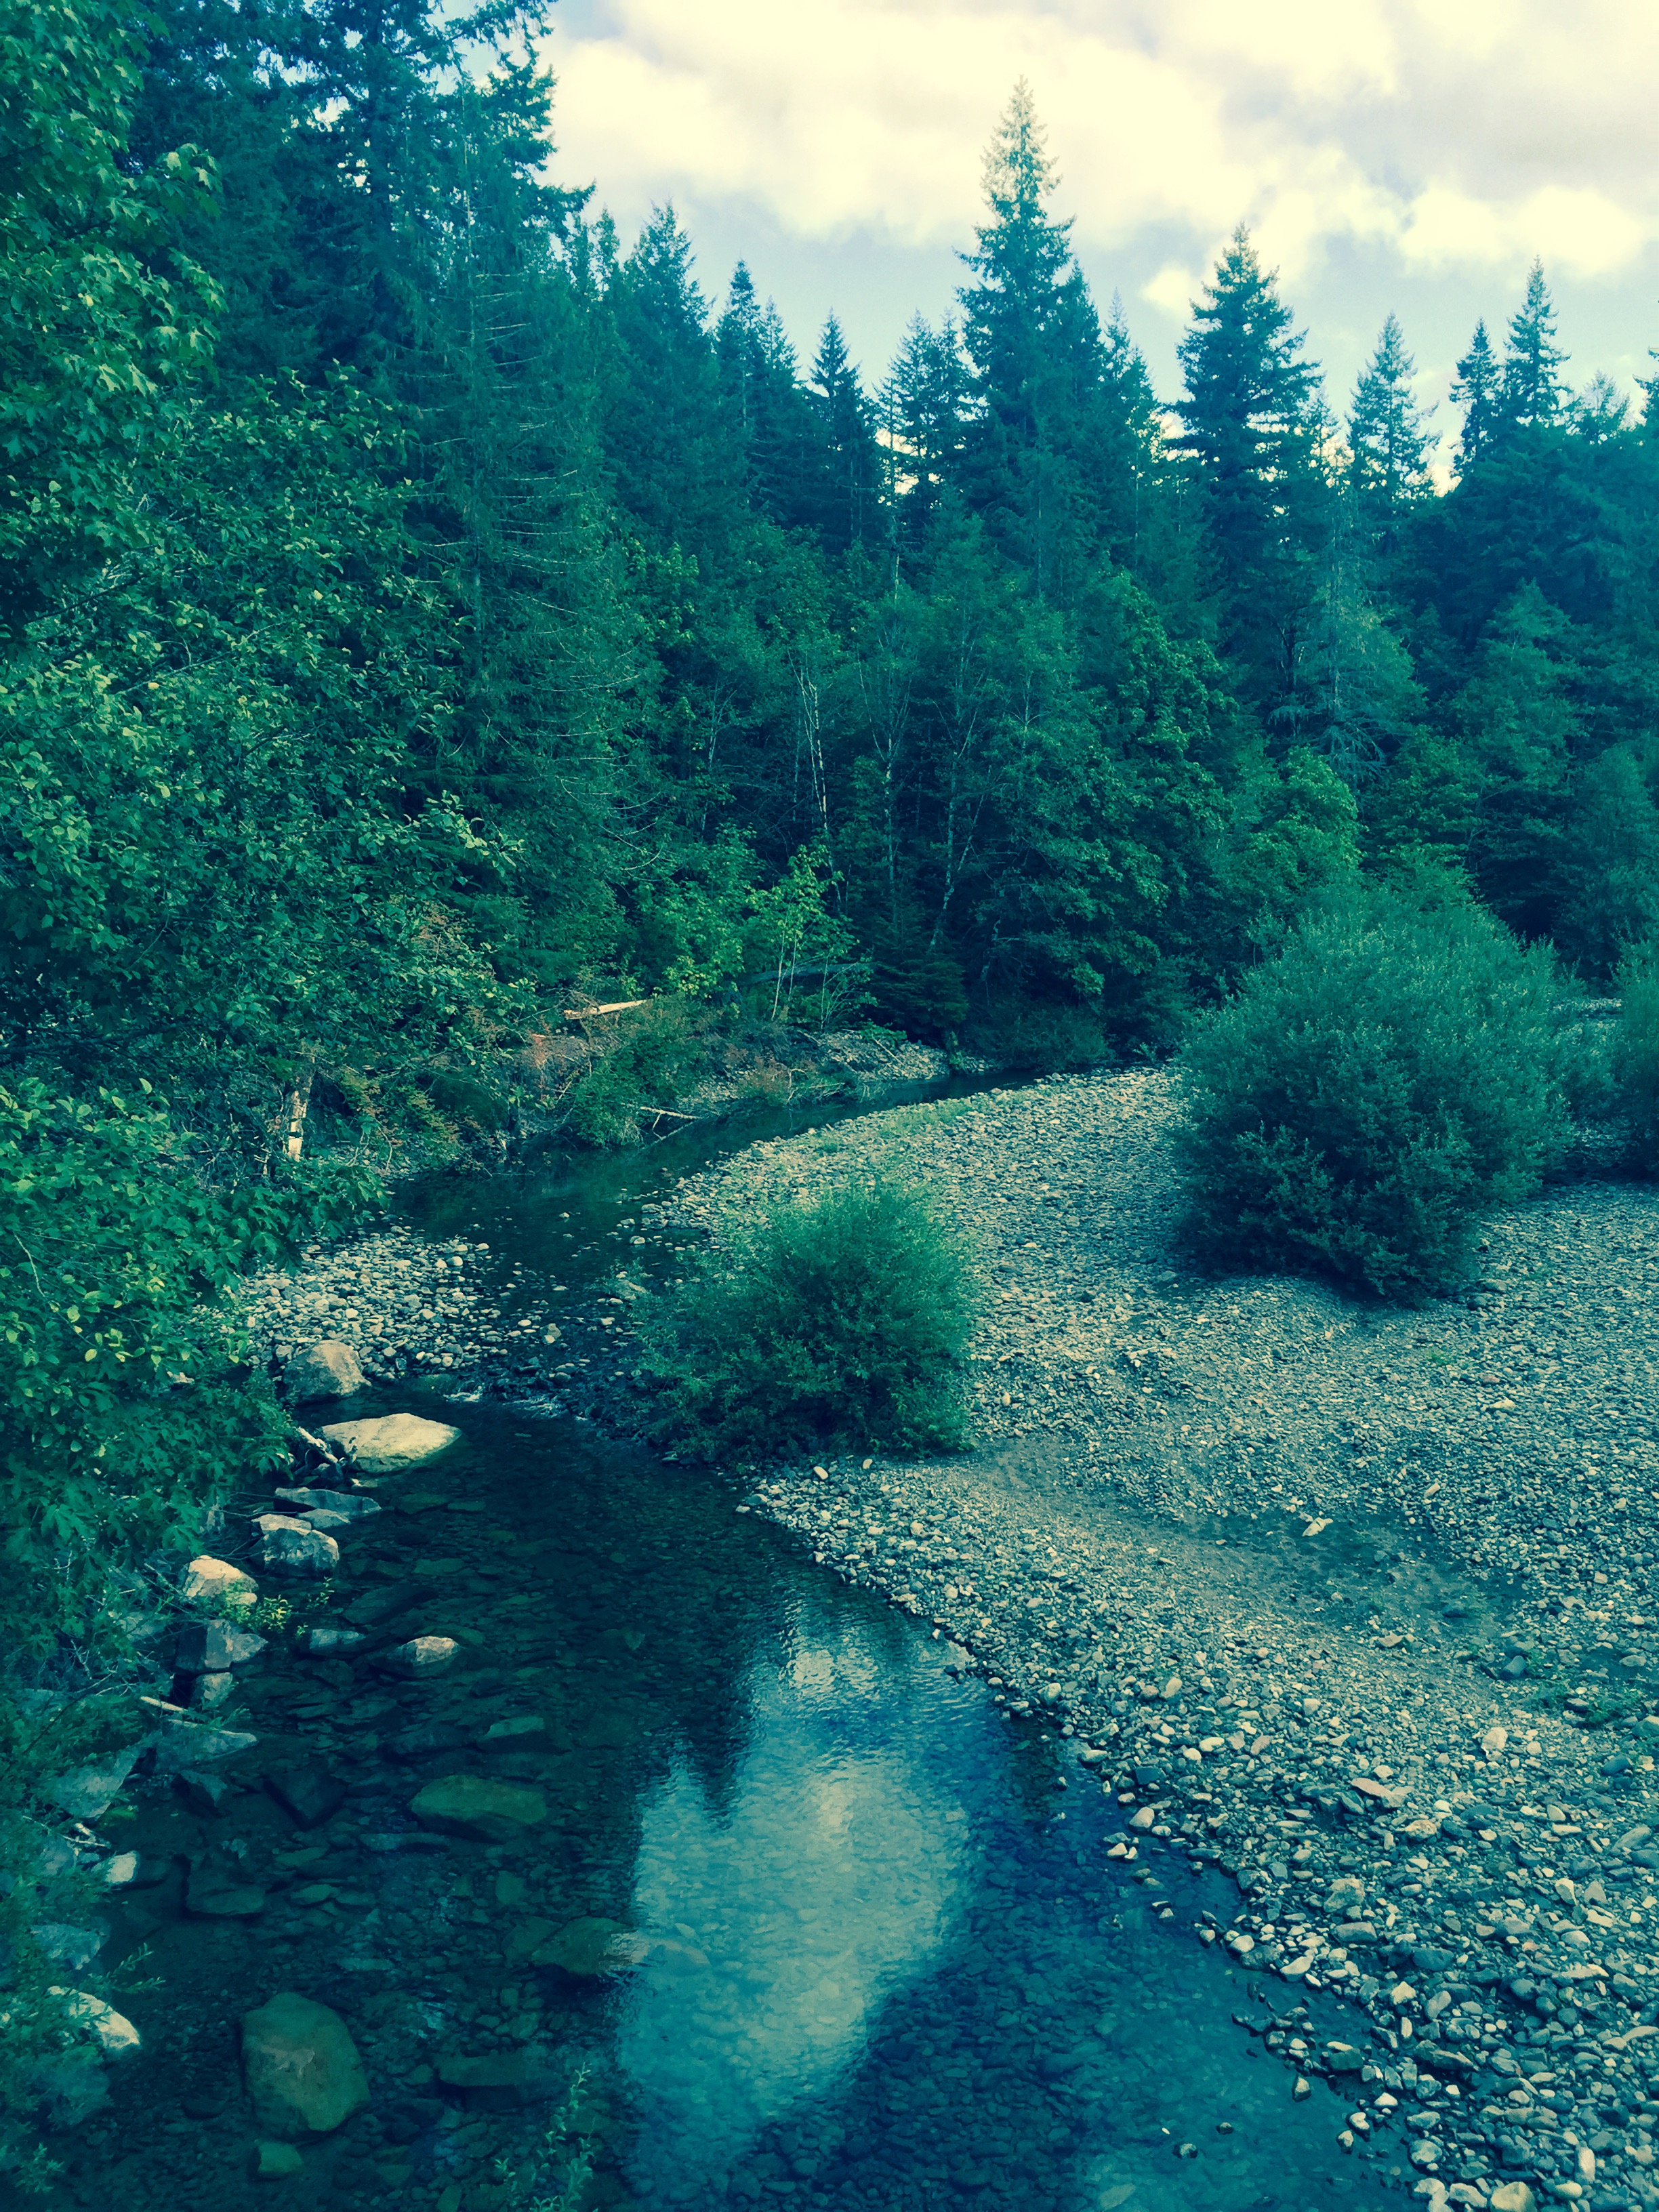 Headwaters of the South Santiam